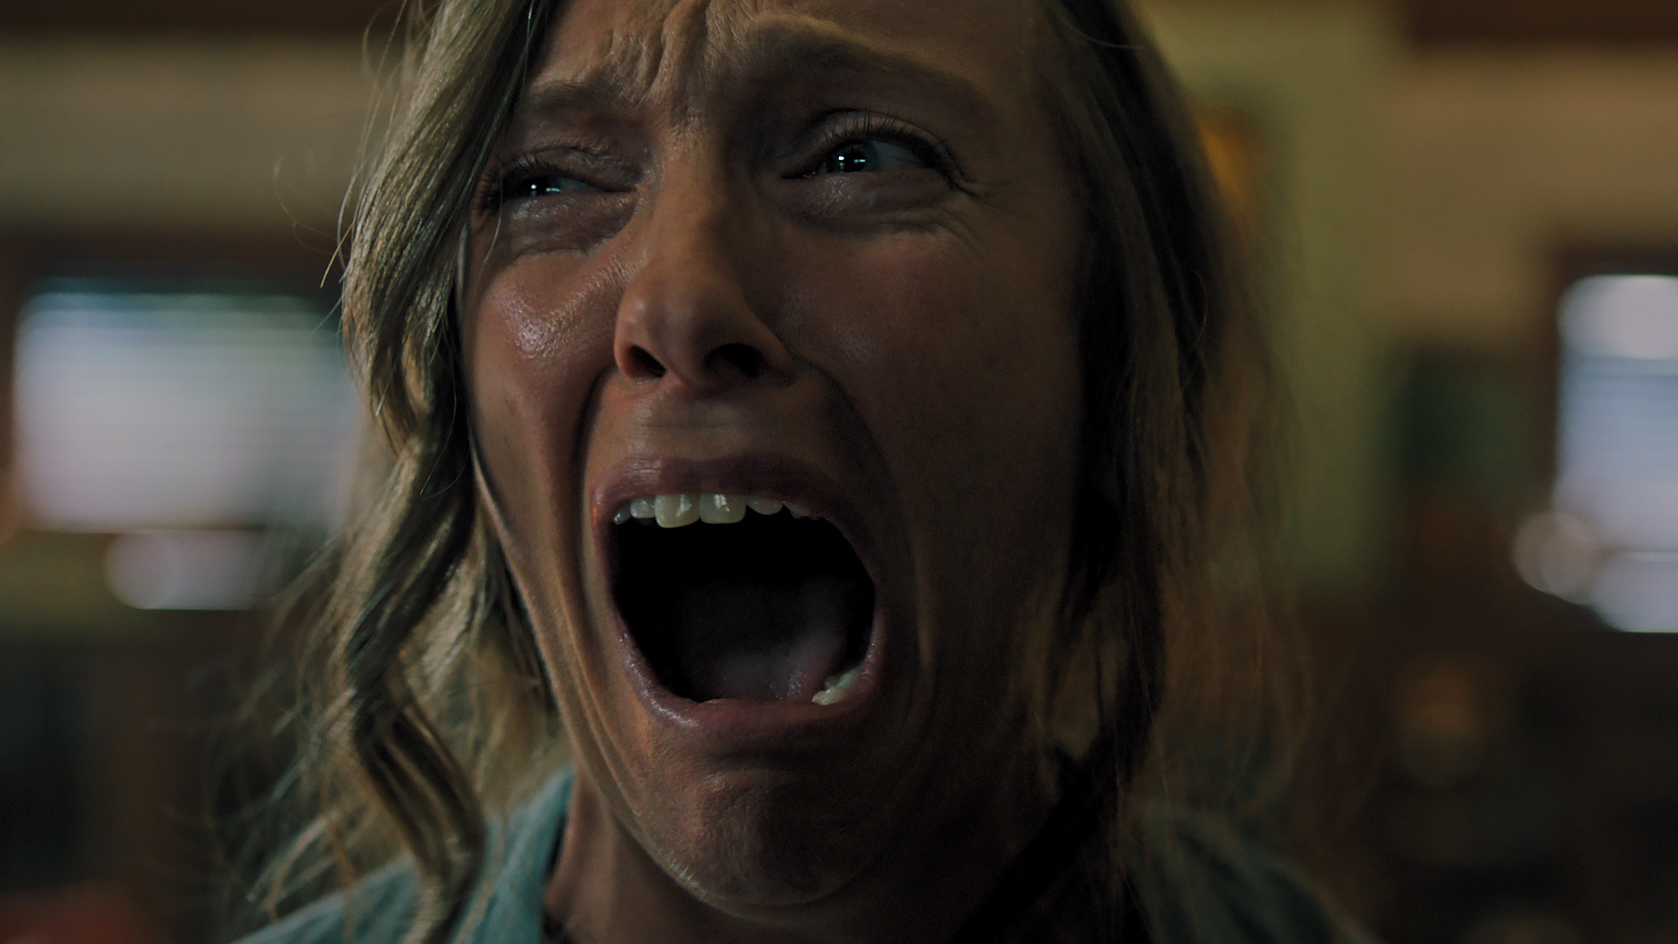 Toni Collette in Hereditary (2018)